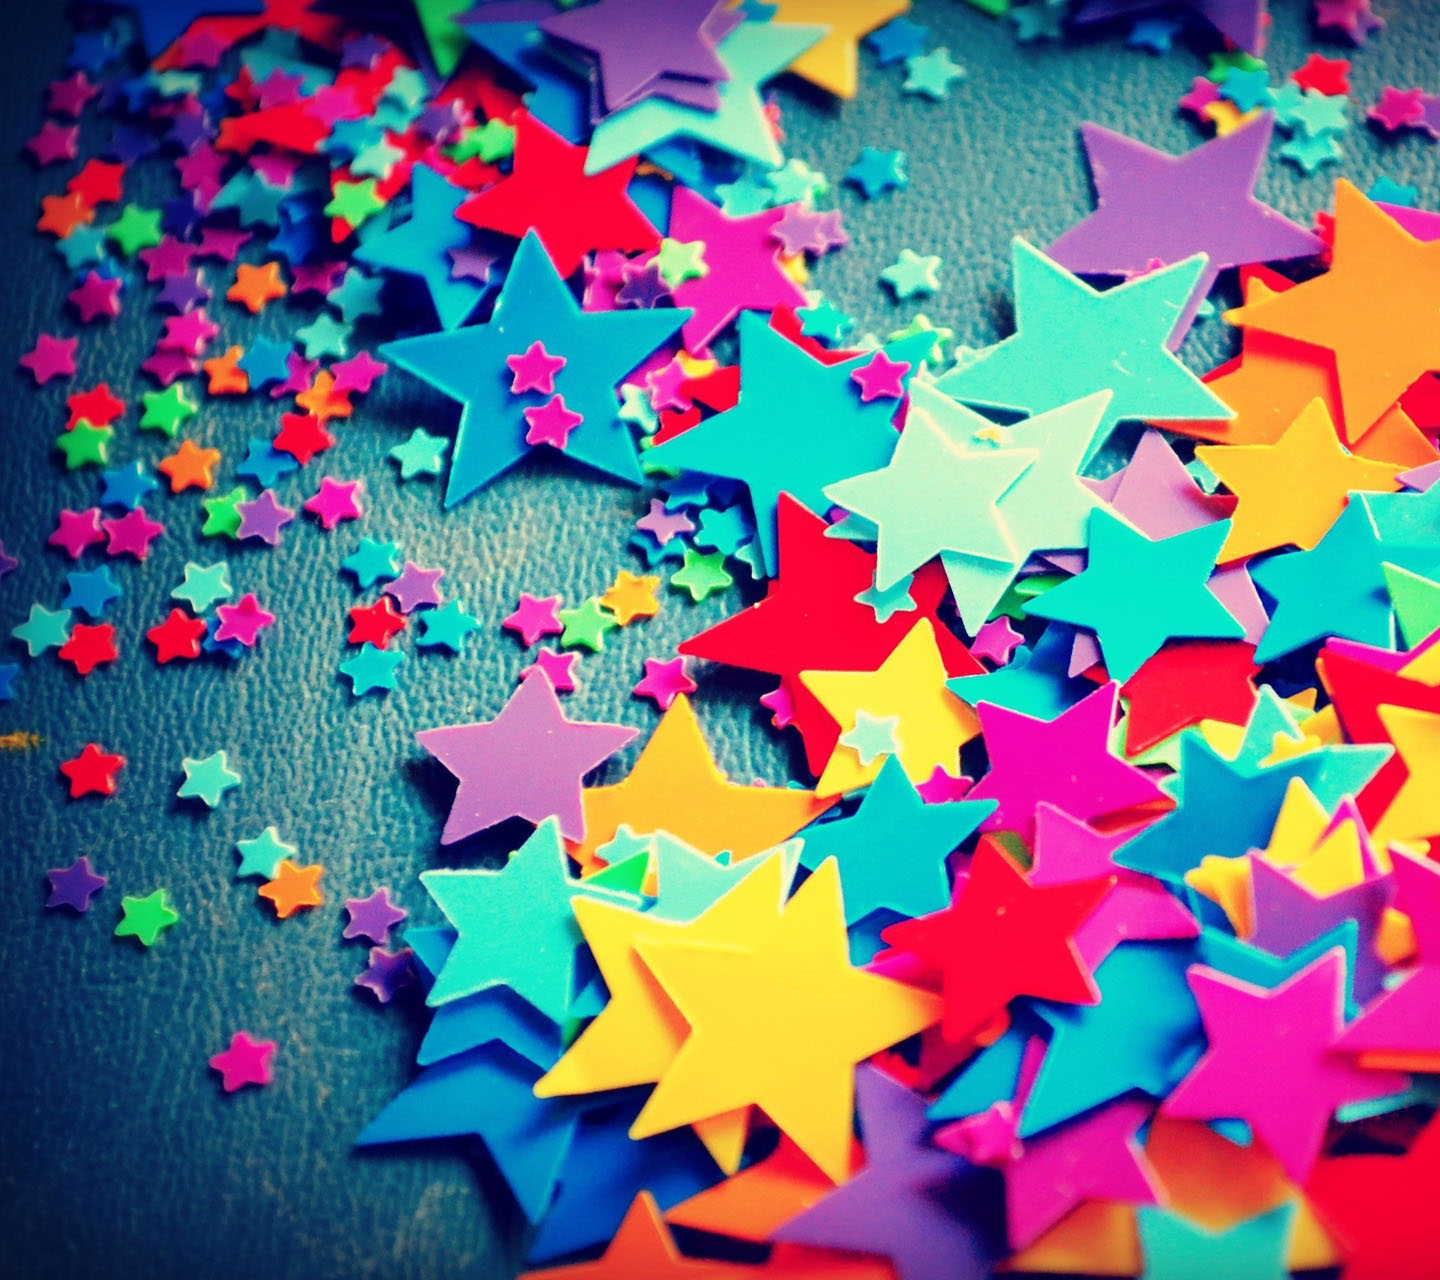 galaxy s3 wallpaper - colorful stars - hd wallpapers - 9to5wallpapers